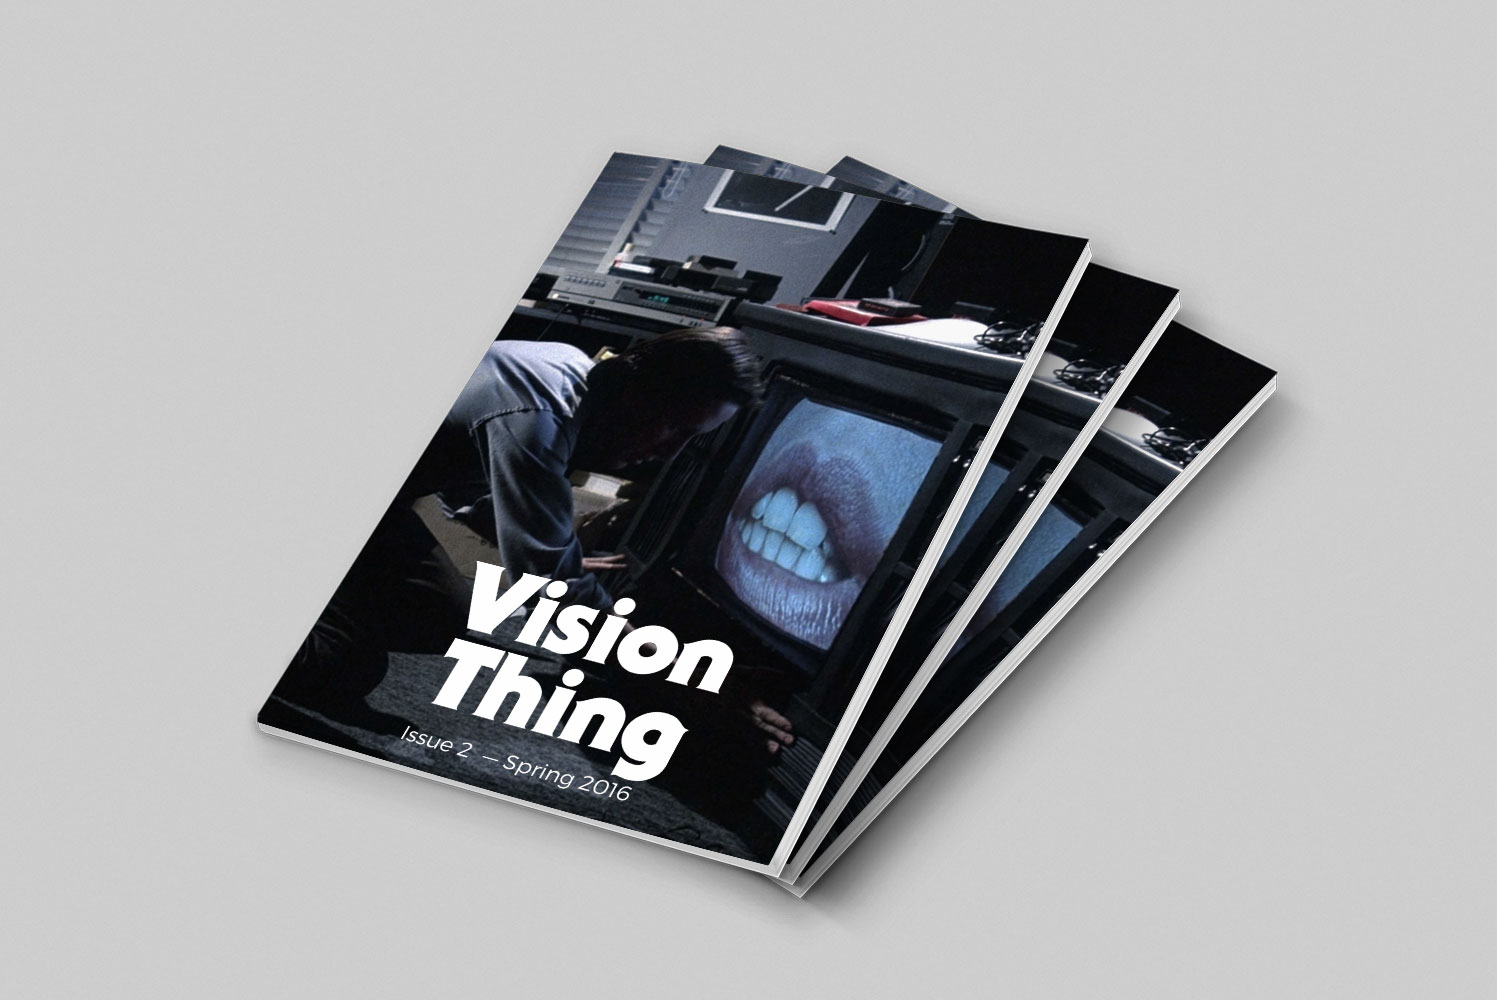 Cover image: Vision Thing